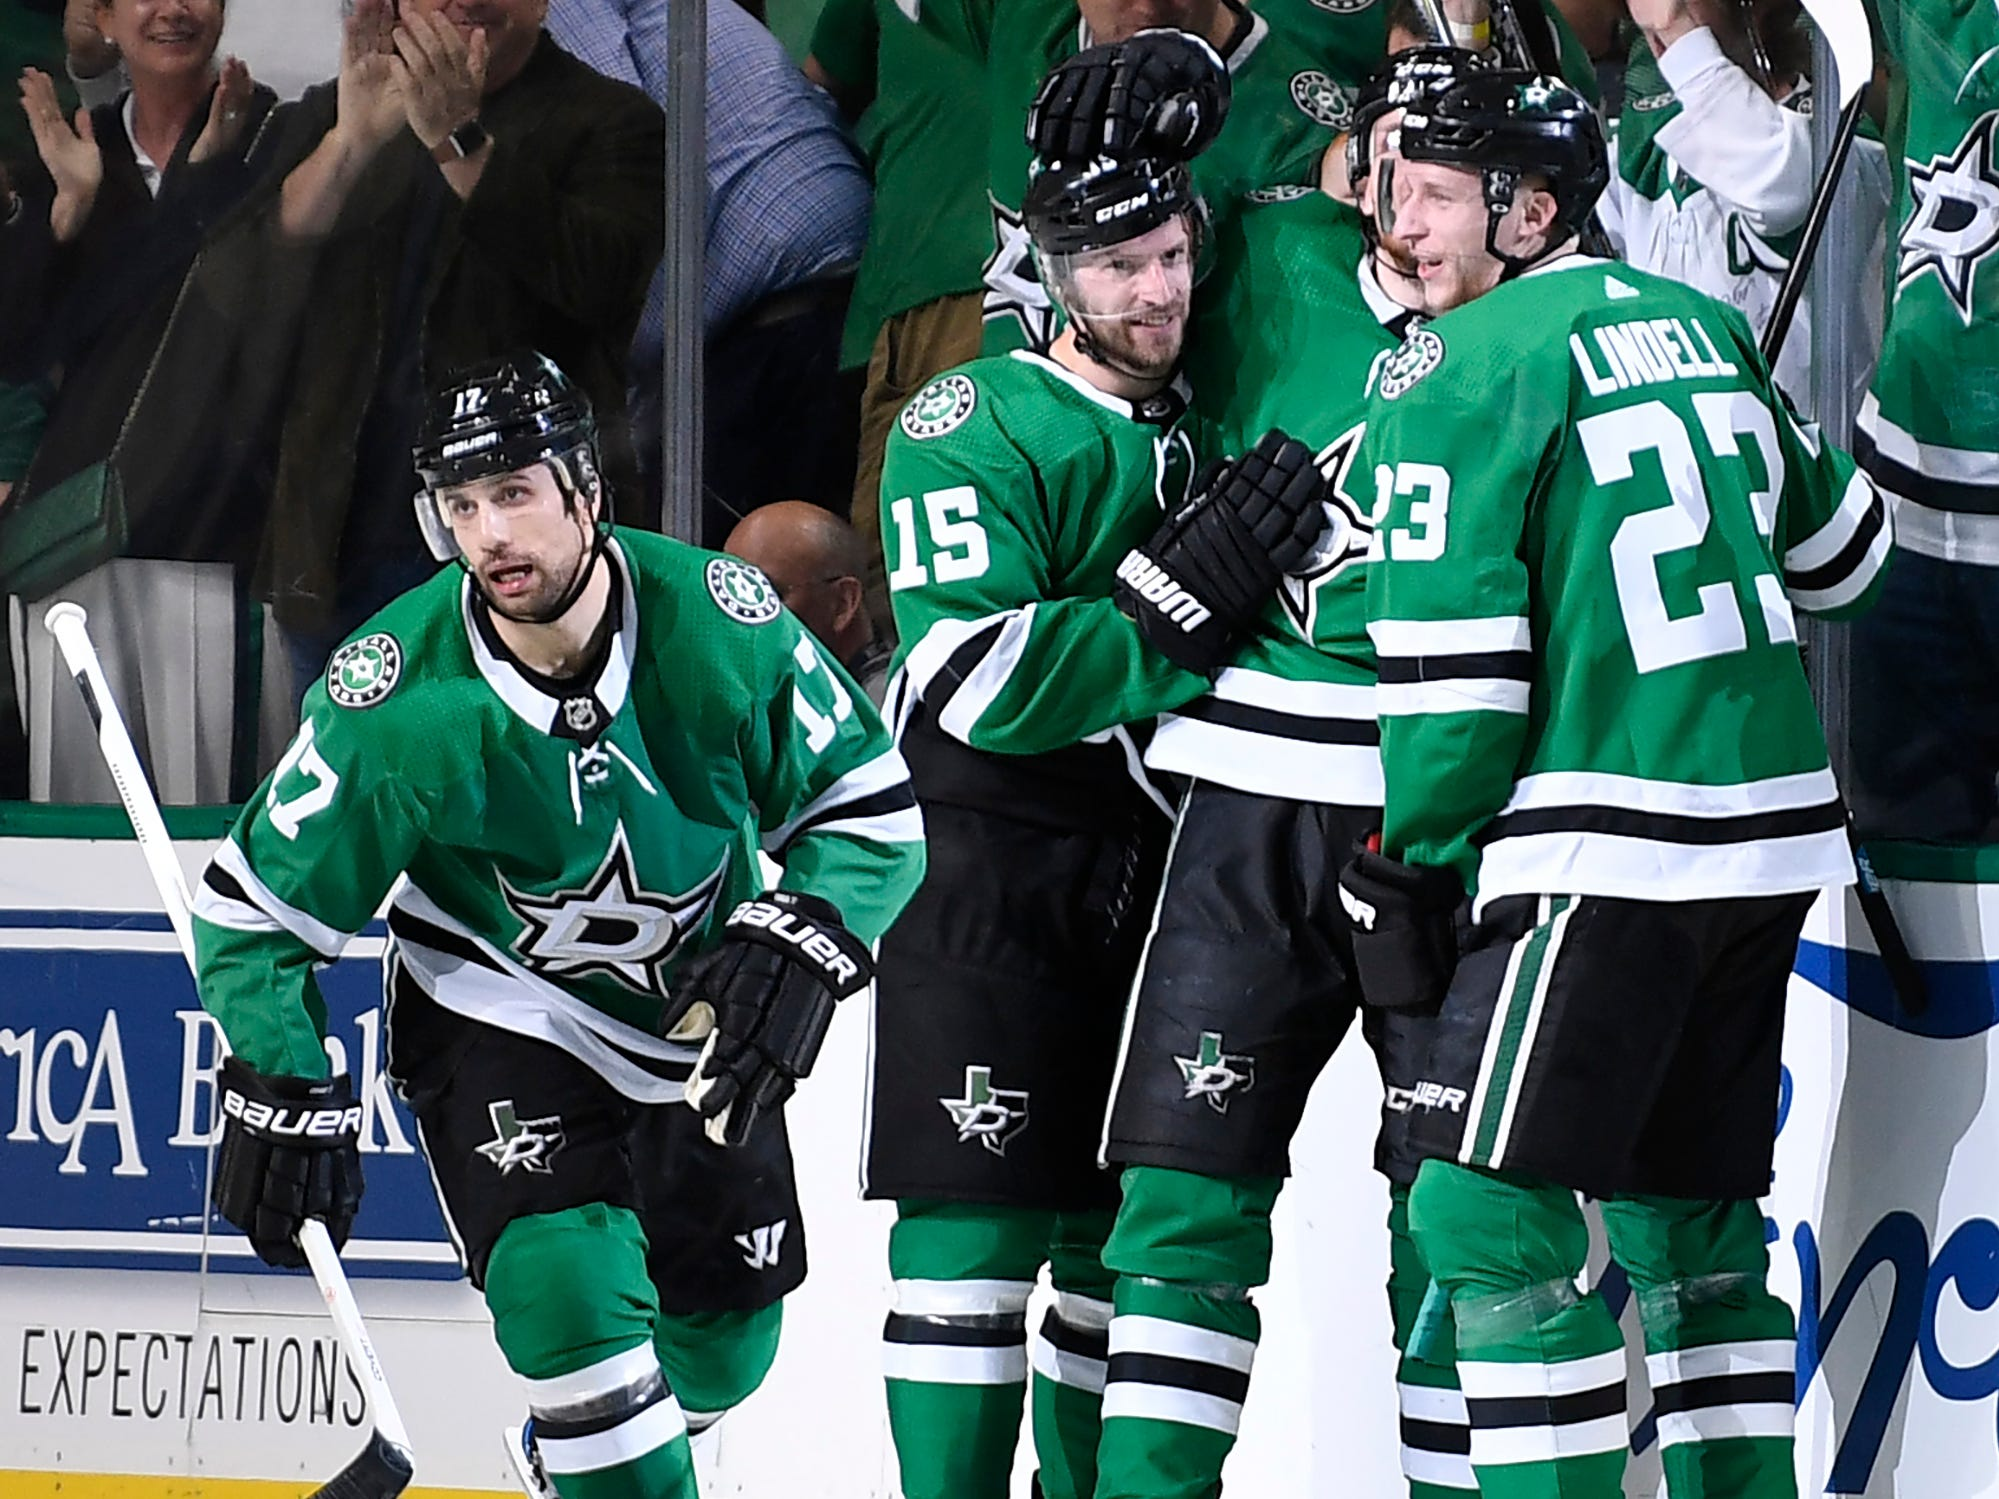 Dallas Stars left wing Blake Comeau (15) celebrates his goal during the second period of the divisional semifinal game against the Nashville Predators at the American Airlines Center in Dallas, Texas, Monday, April 22, 2019.